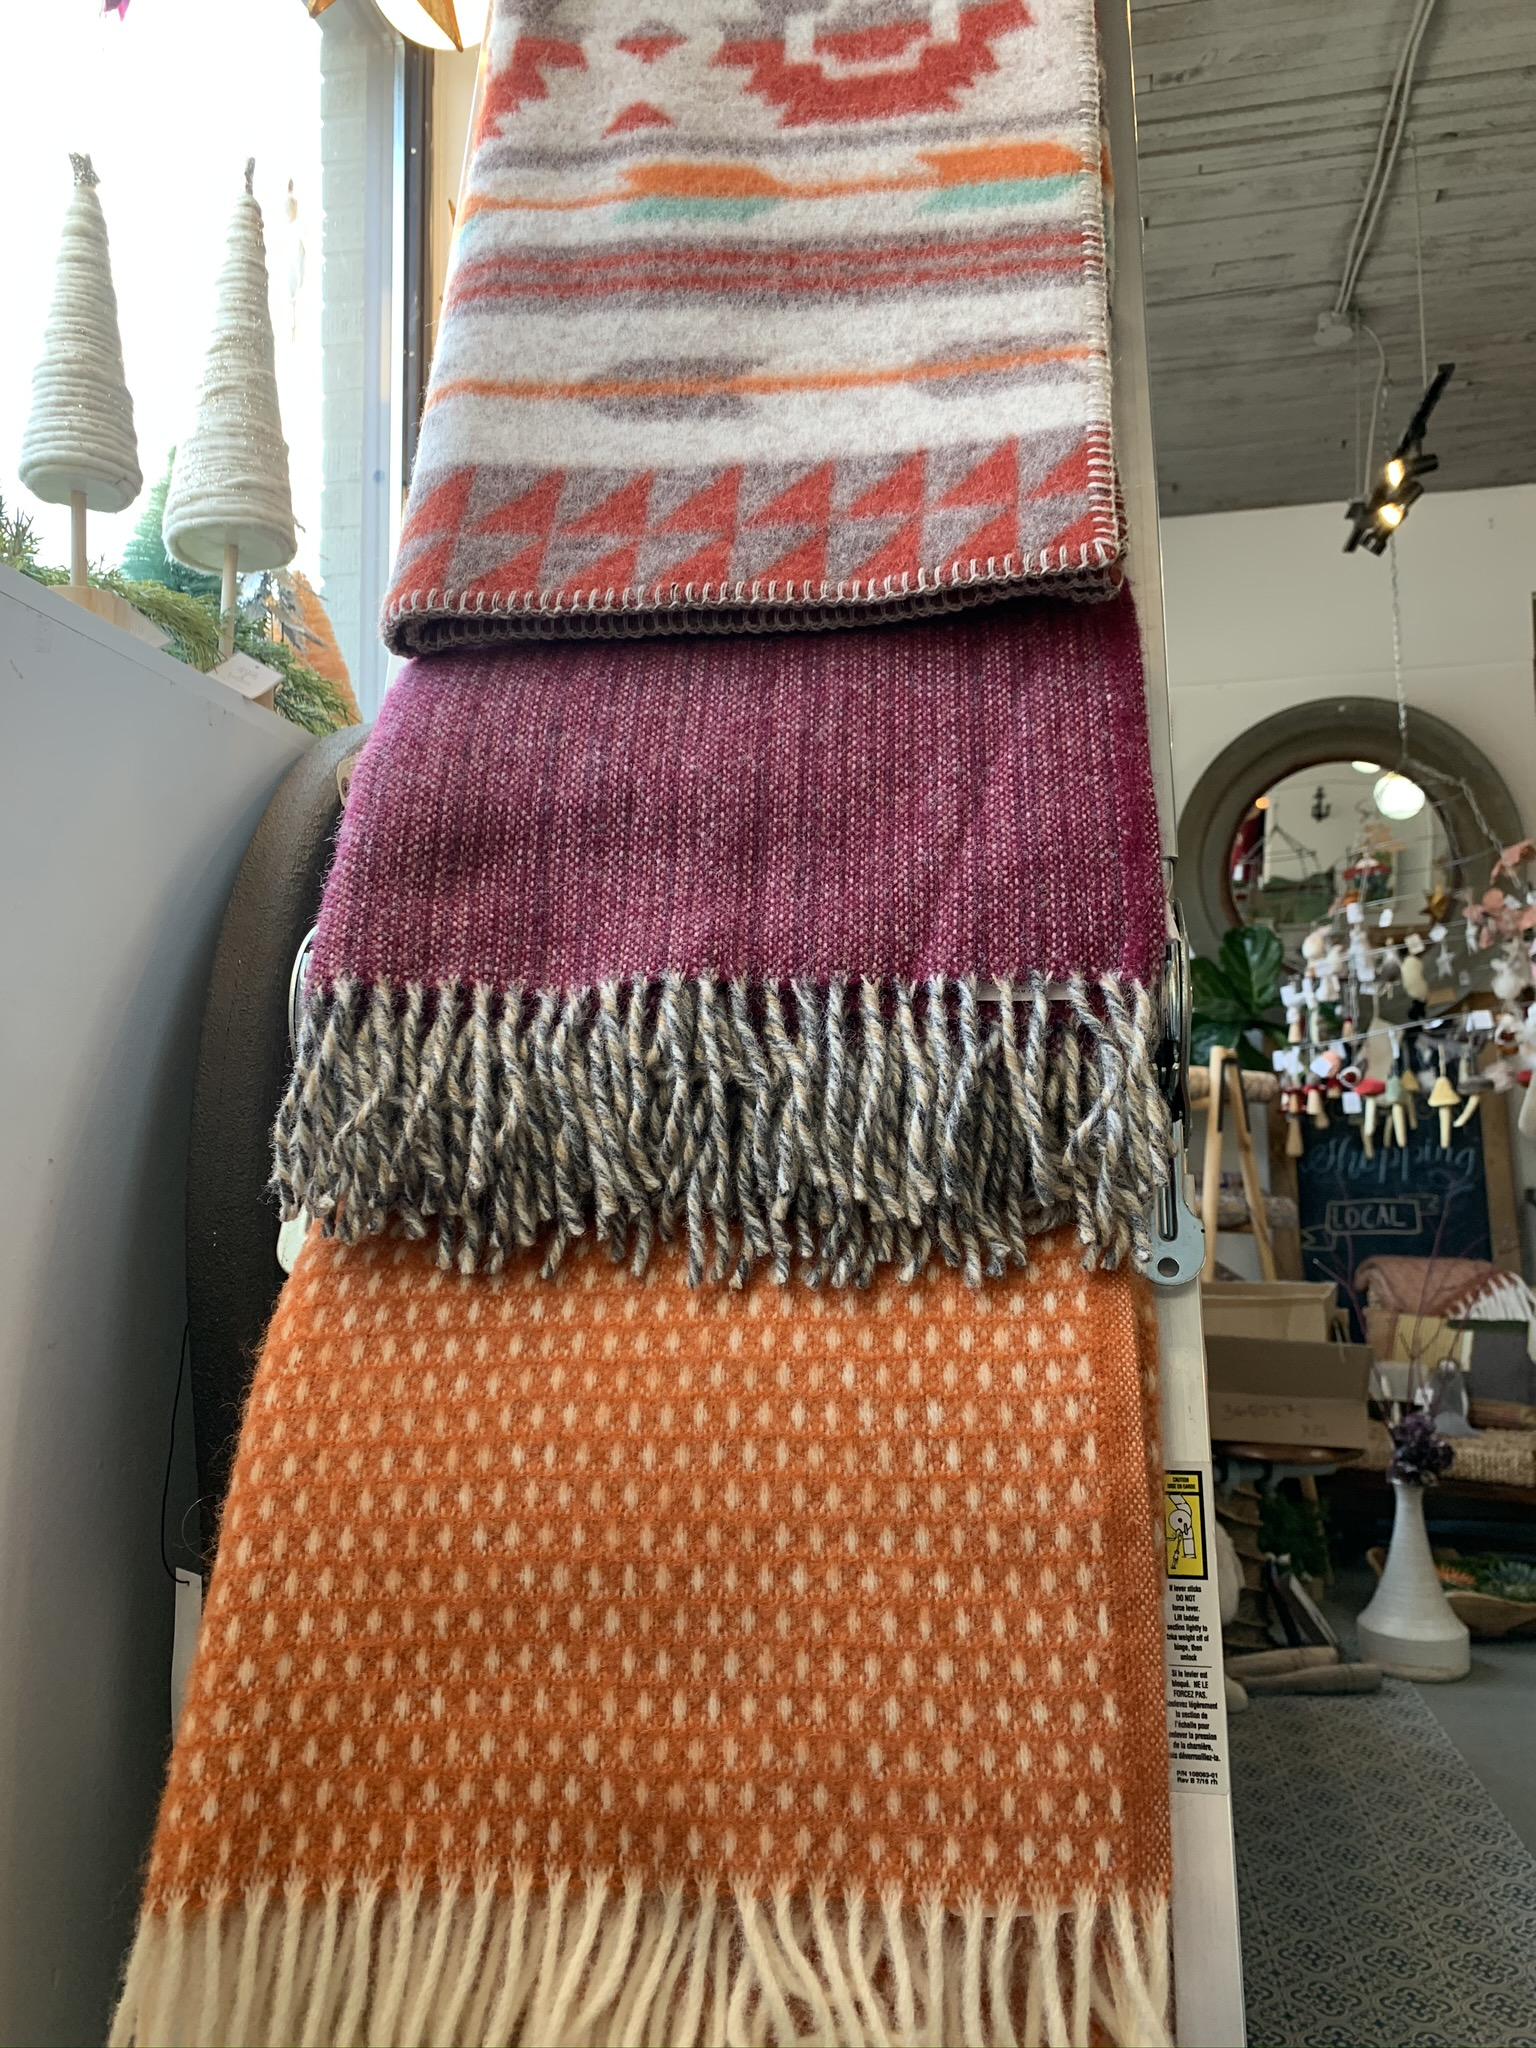 Three multicoloured wool blankets are folded over a ladder